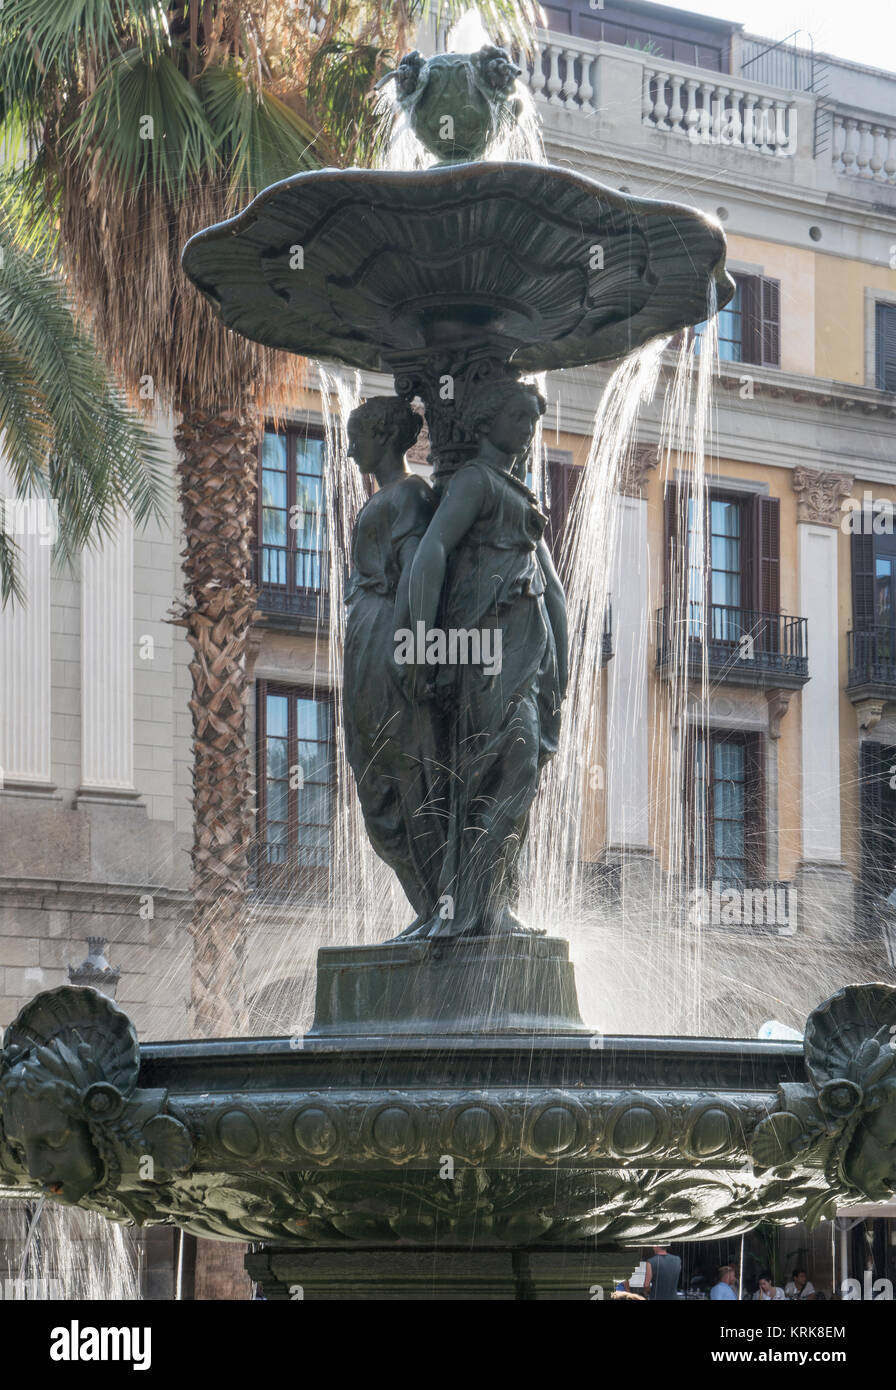 Water flowing on fountain in city - Stock Image